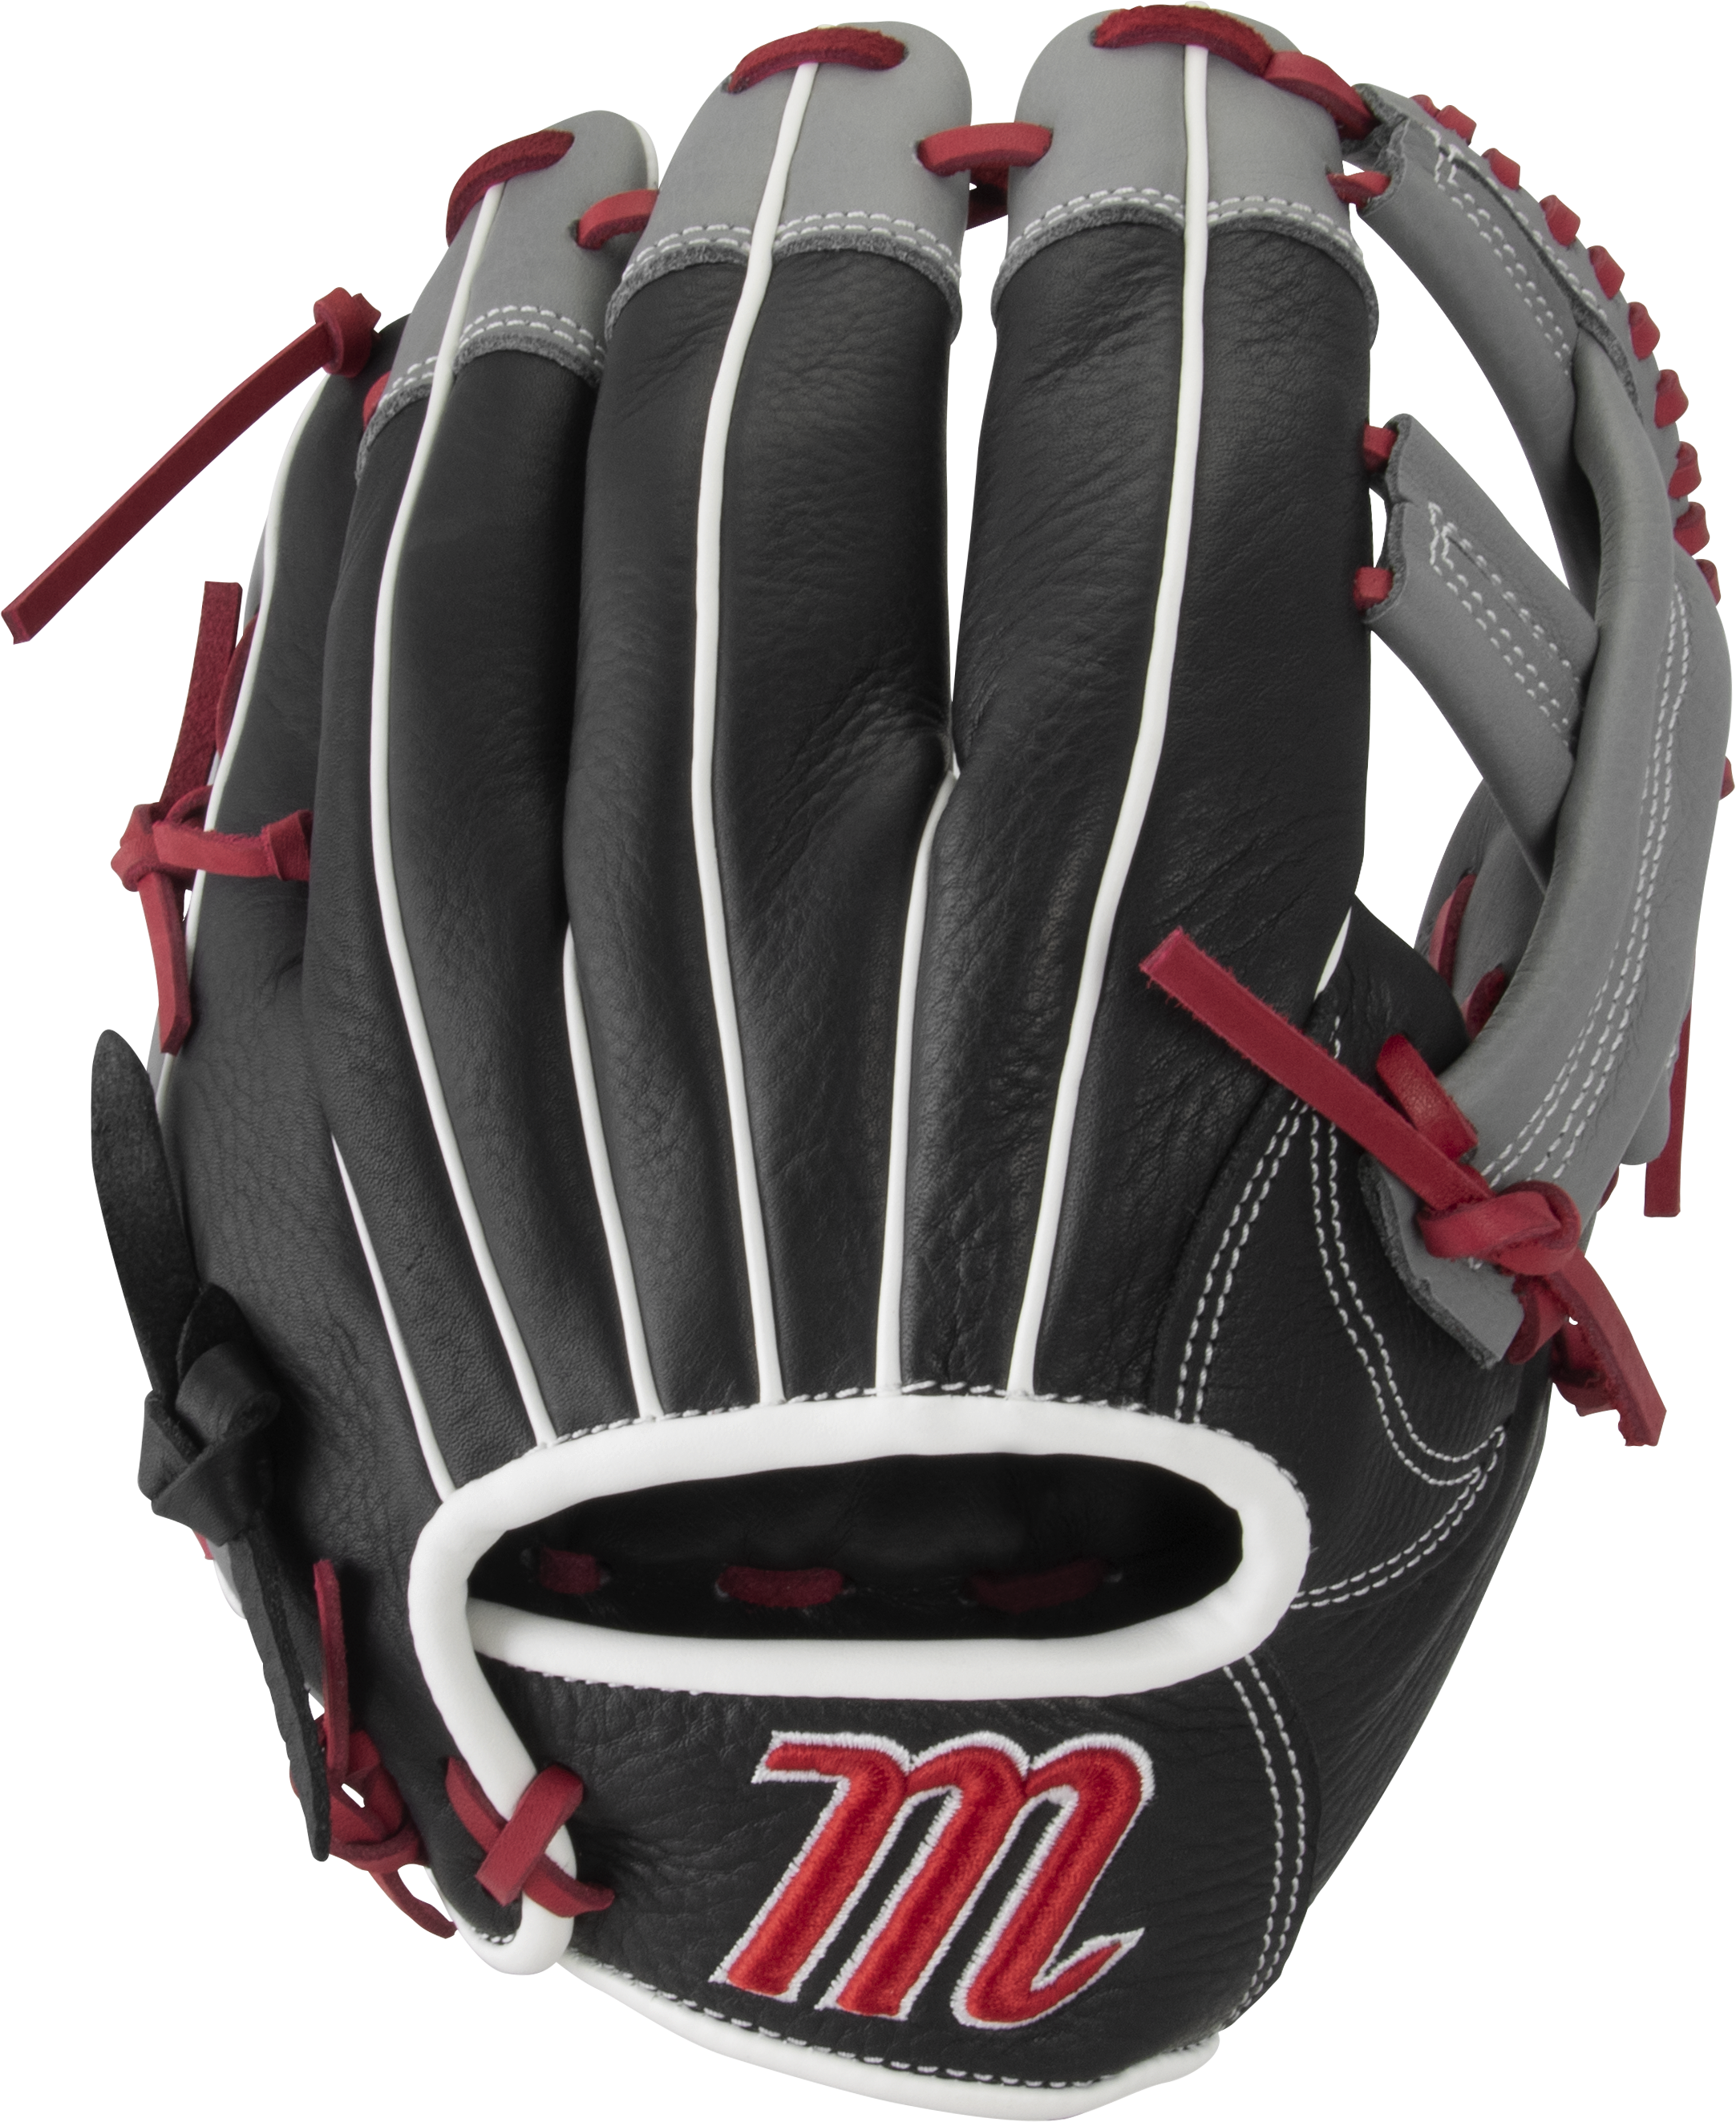 marucci-vermilion-youth-baseball-glove-vr1150y-11-5-single-post-right-hand-throw MFGVR115Y-BKR-RightHandThrow Marucci 849817099643 Oiled cowhide leather shell and padded leather palm lining Reinforced finger